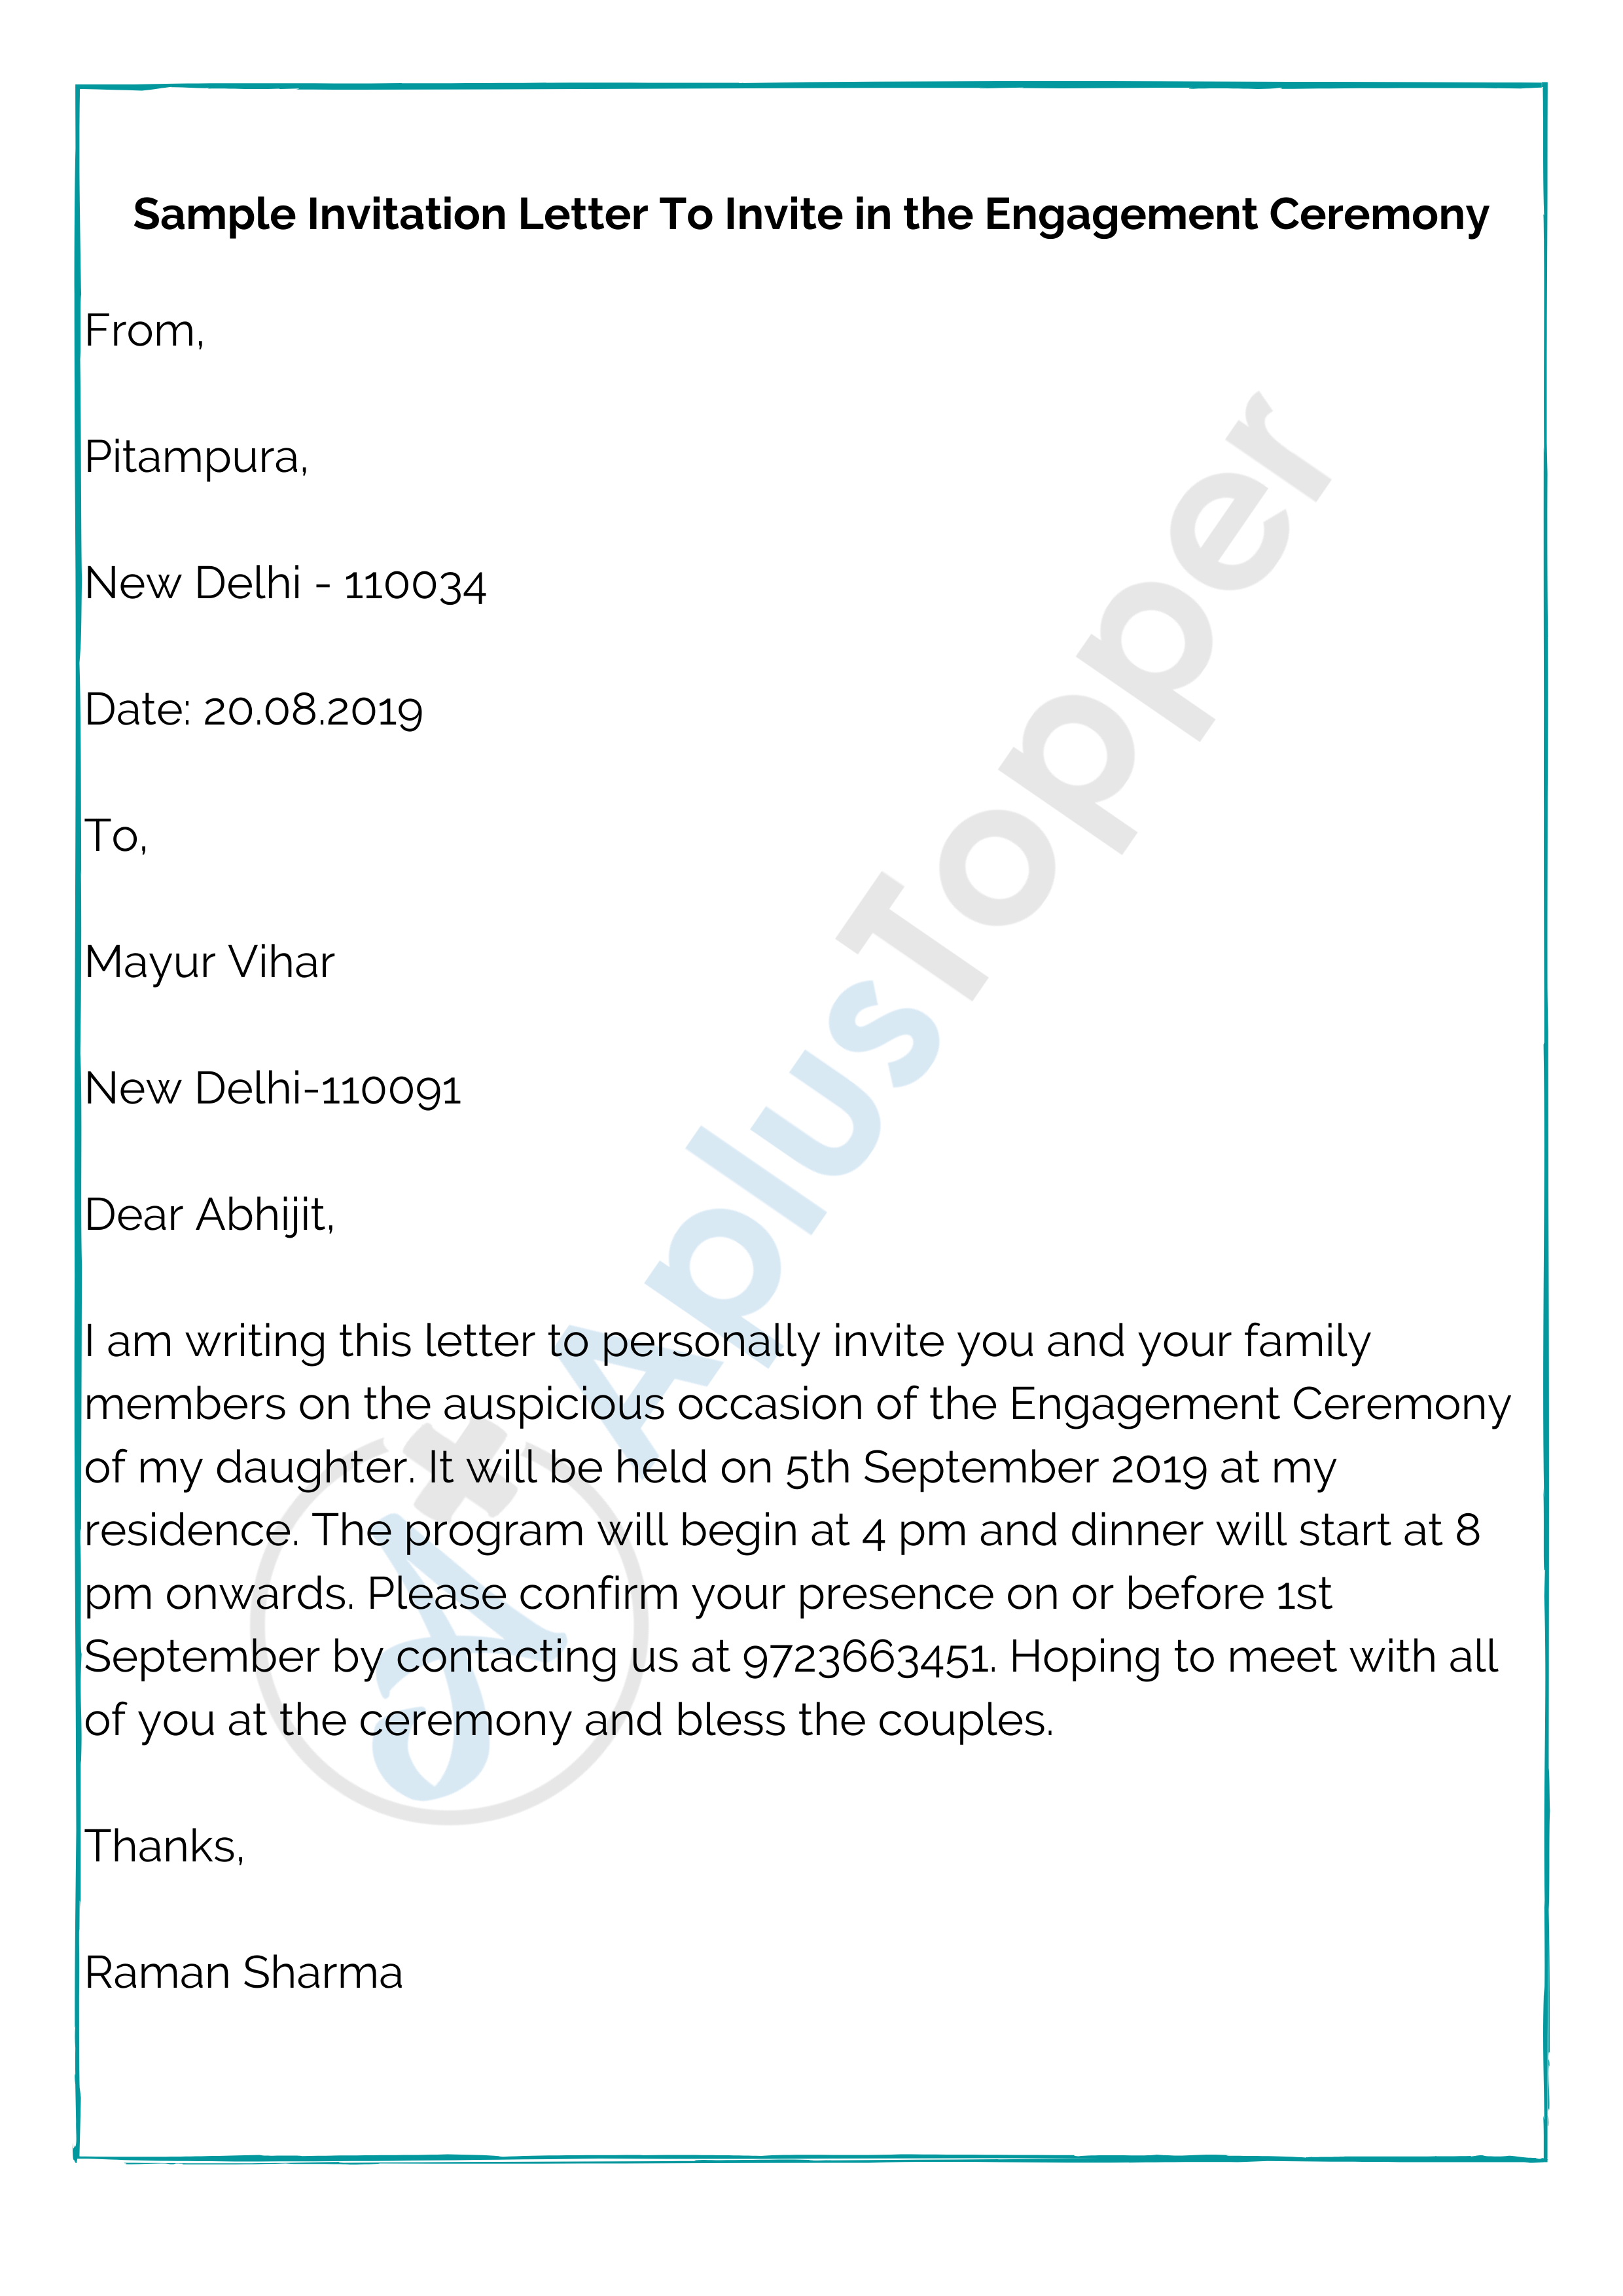 Invitation Letter  Format, Samples and How To Write An Invitation